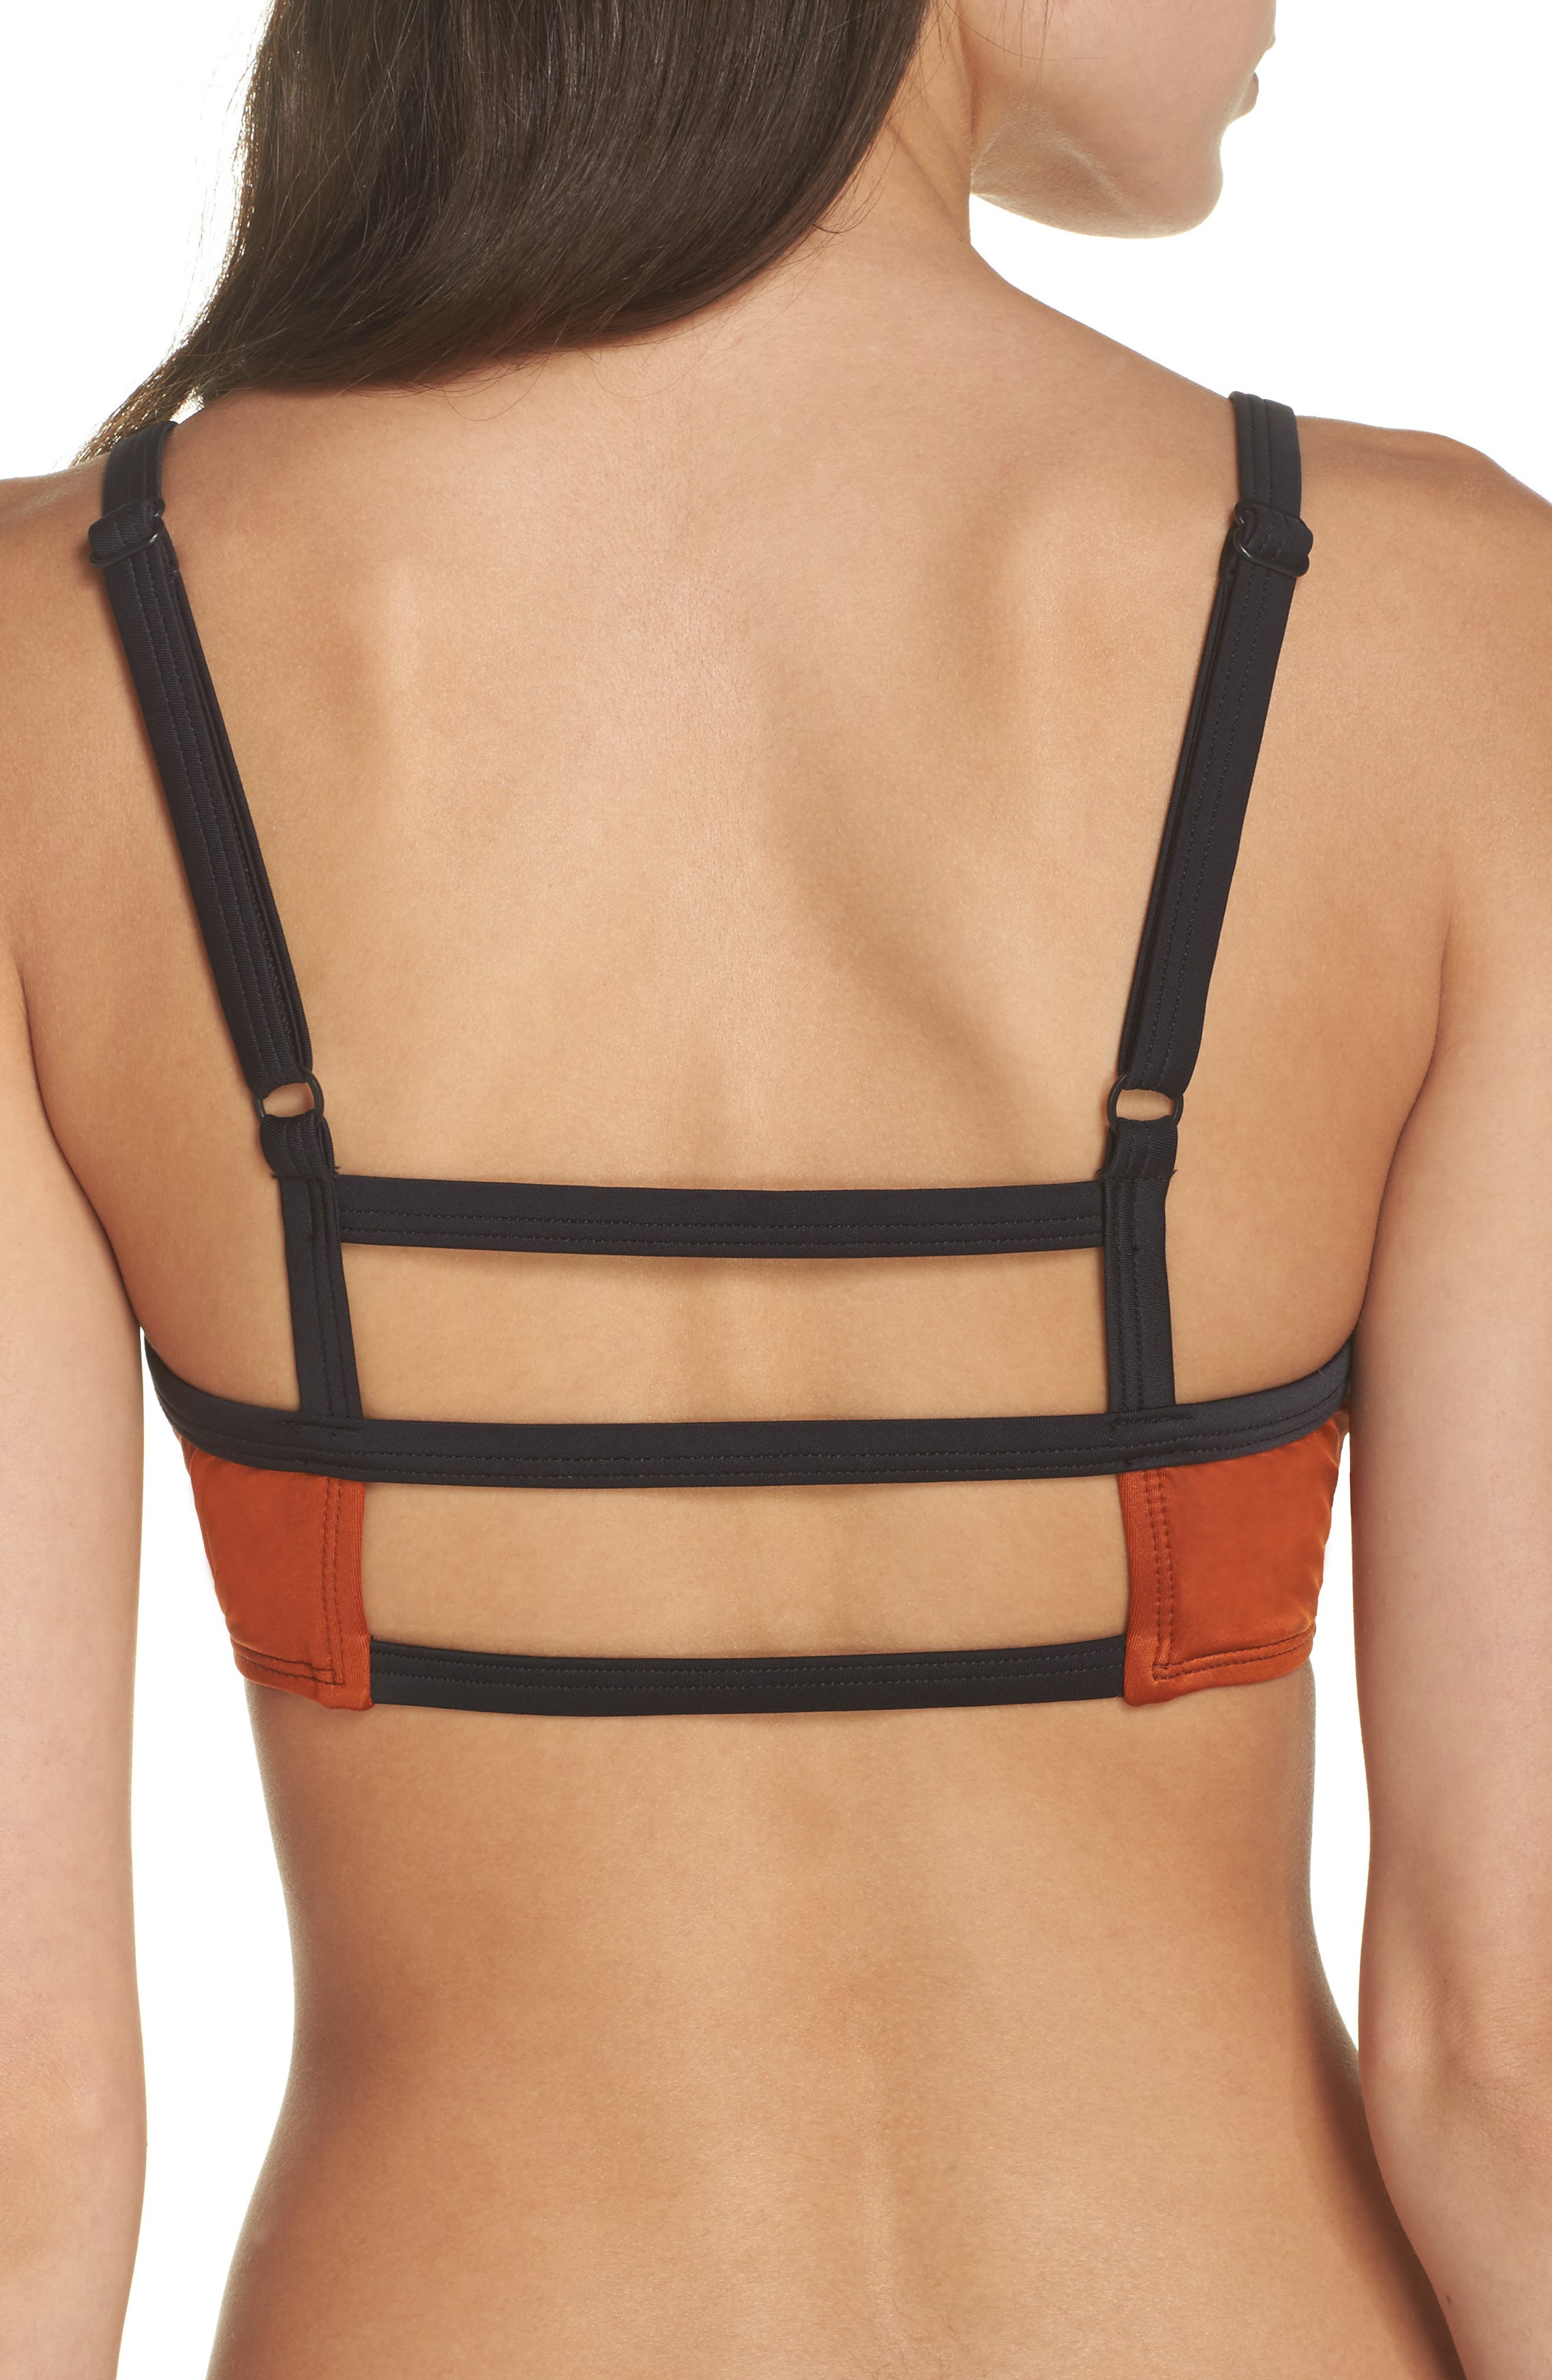 Ladder Back Bikini Top,                             Alternate thumbnail 4, color,                             225